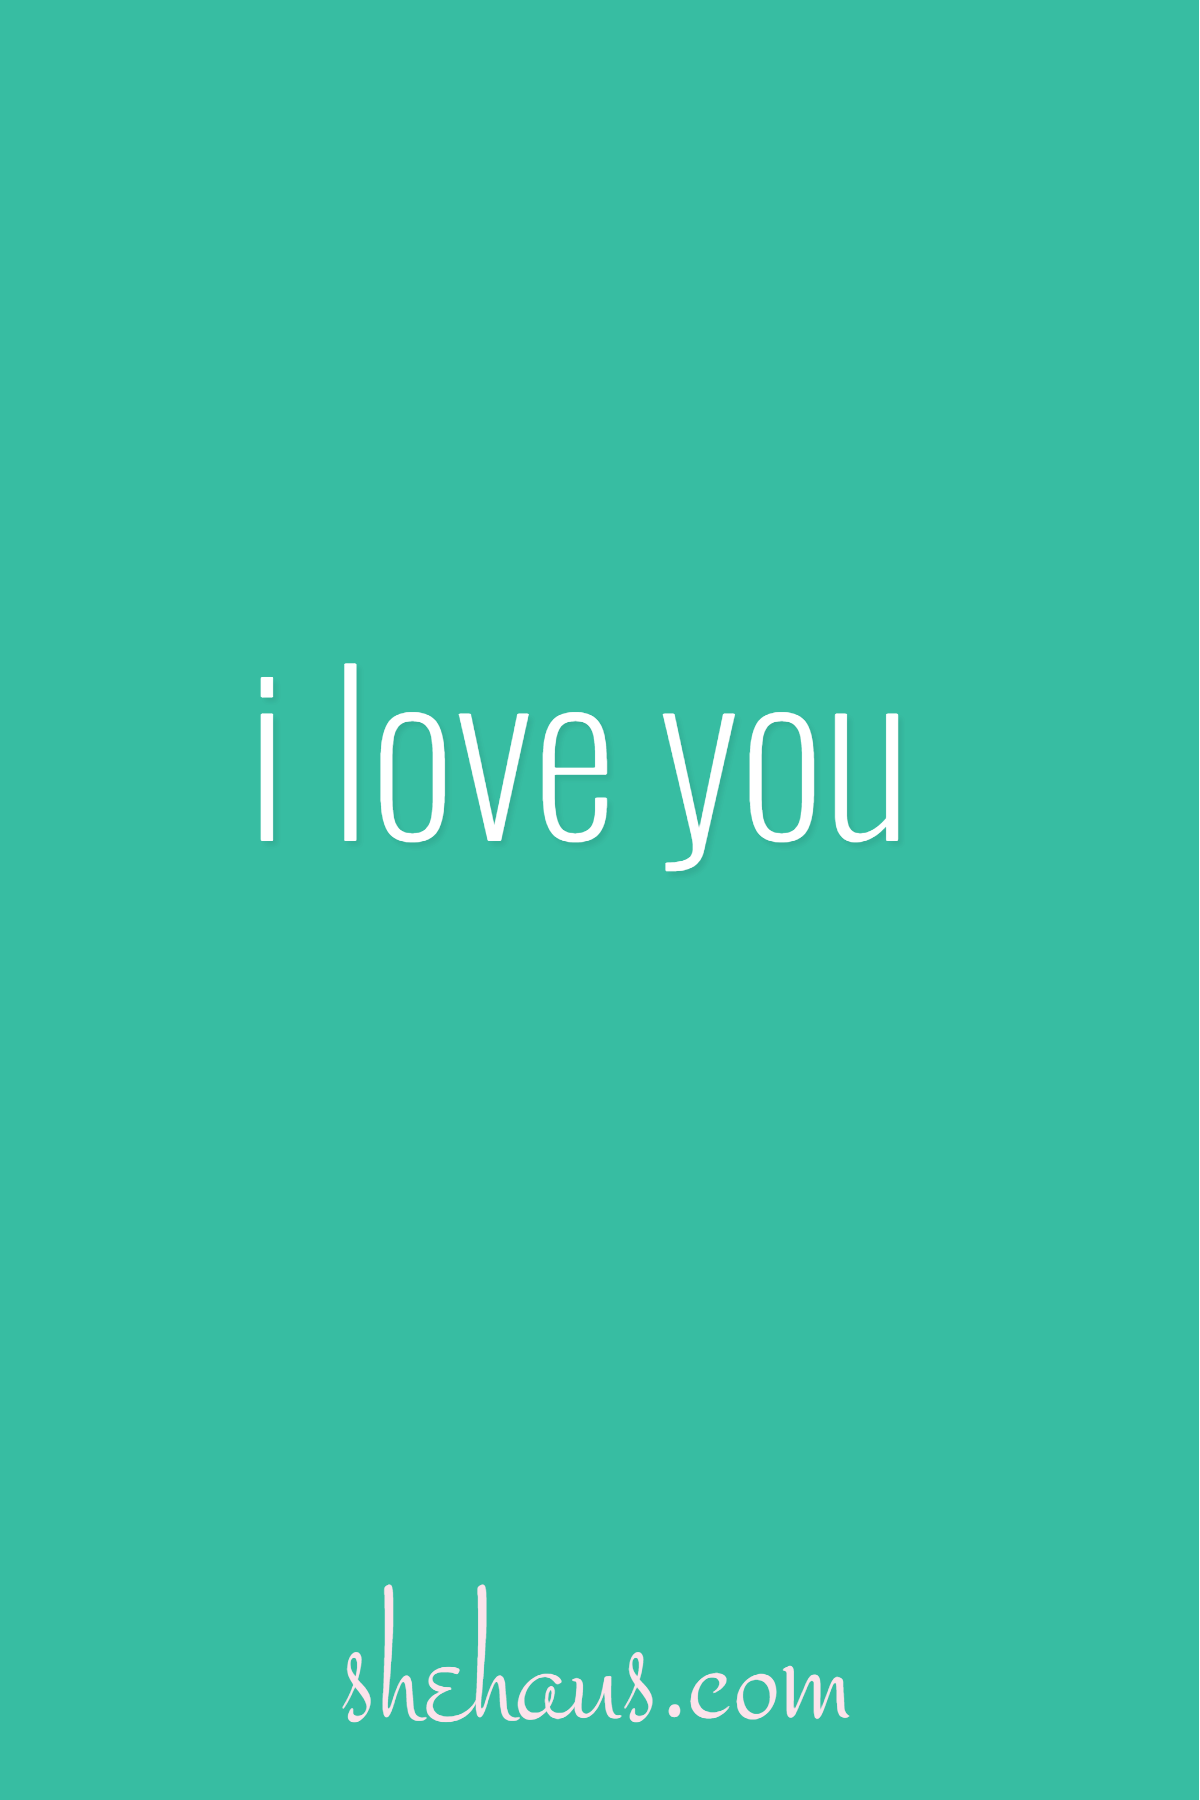 I love you more than life itself!! I hope you know that